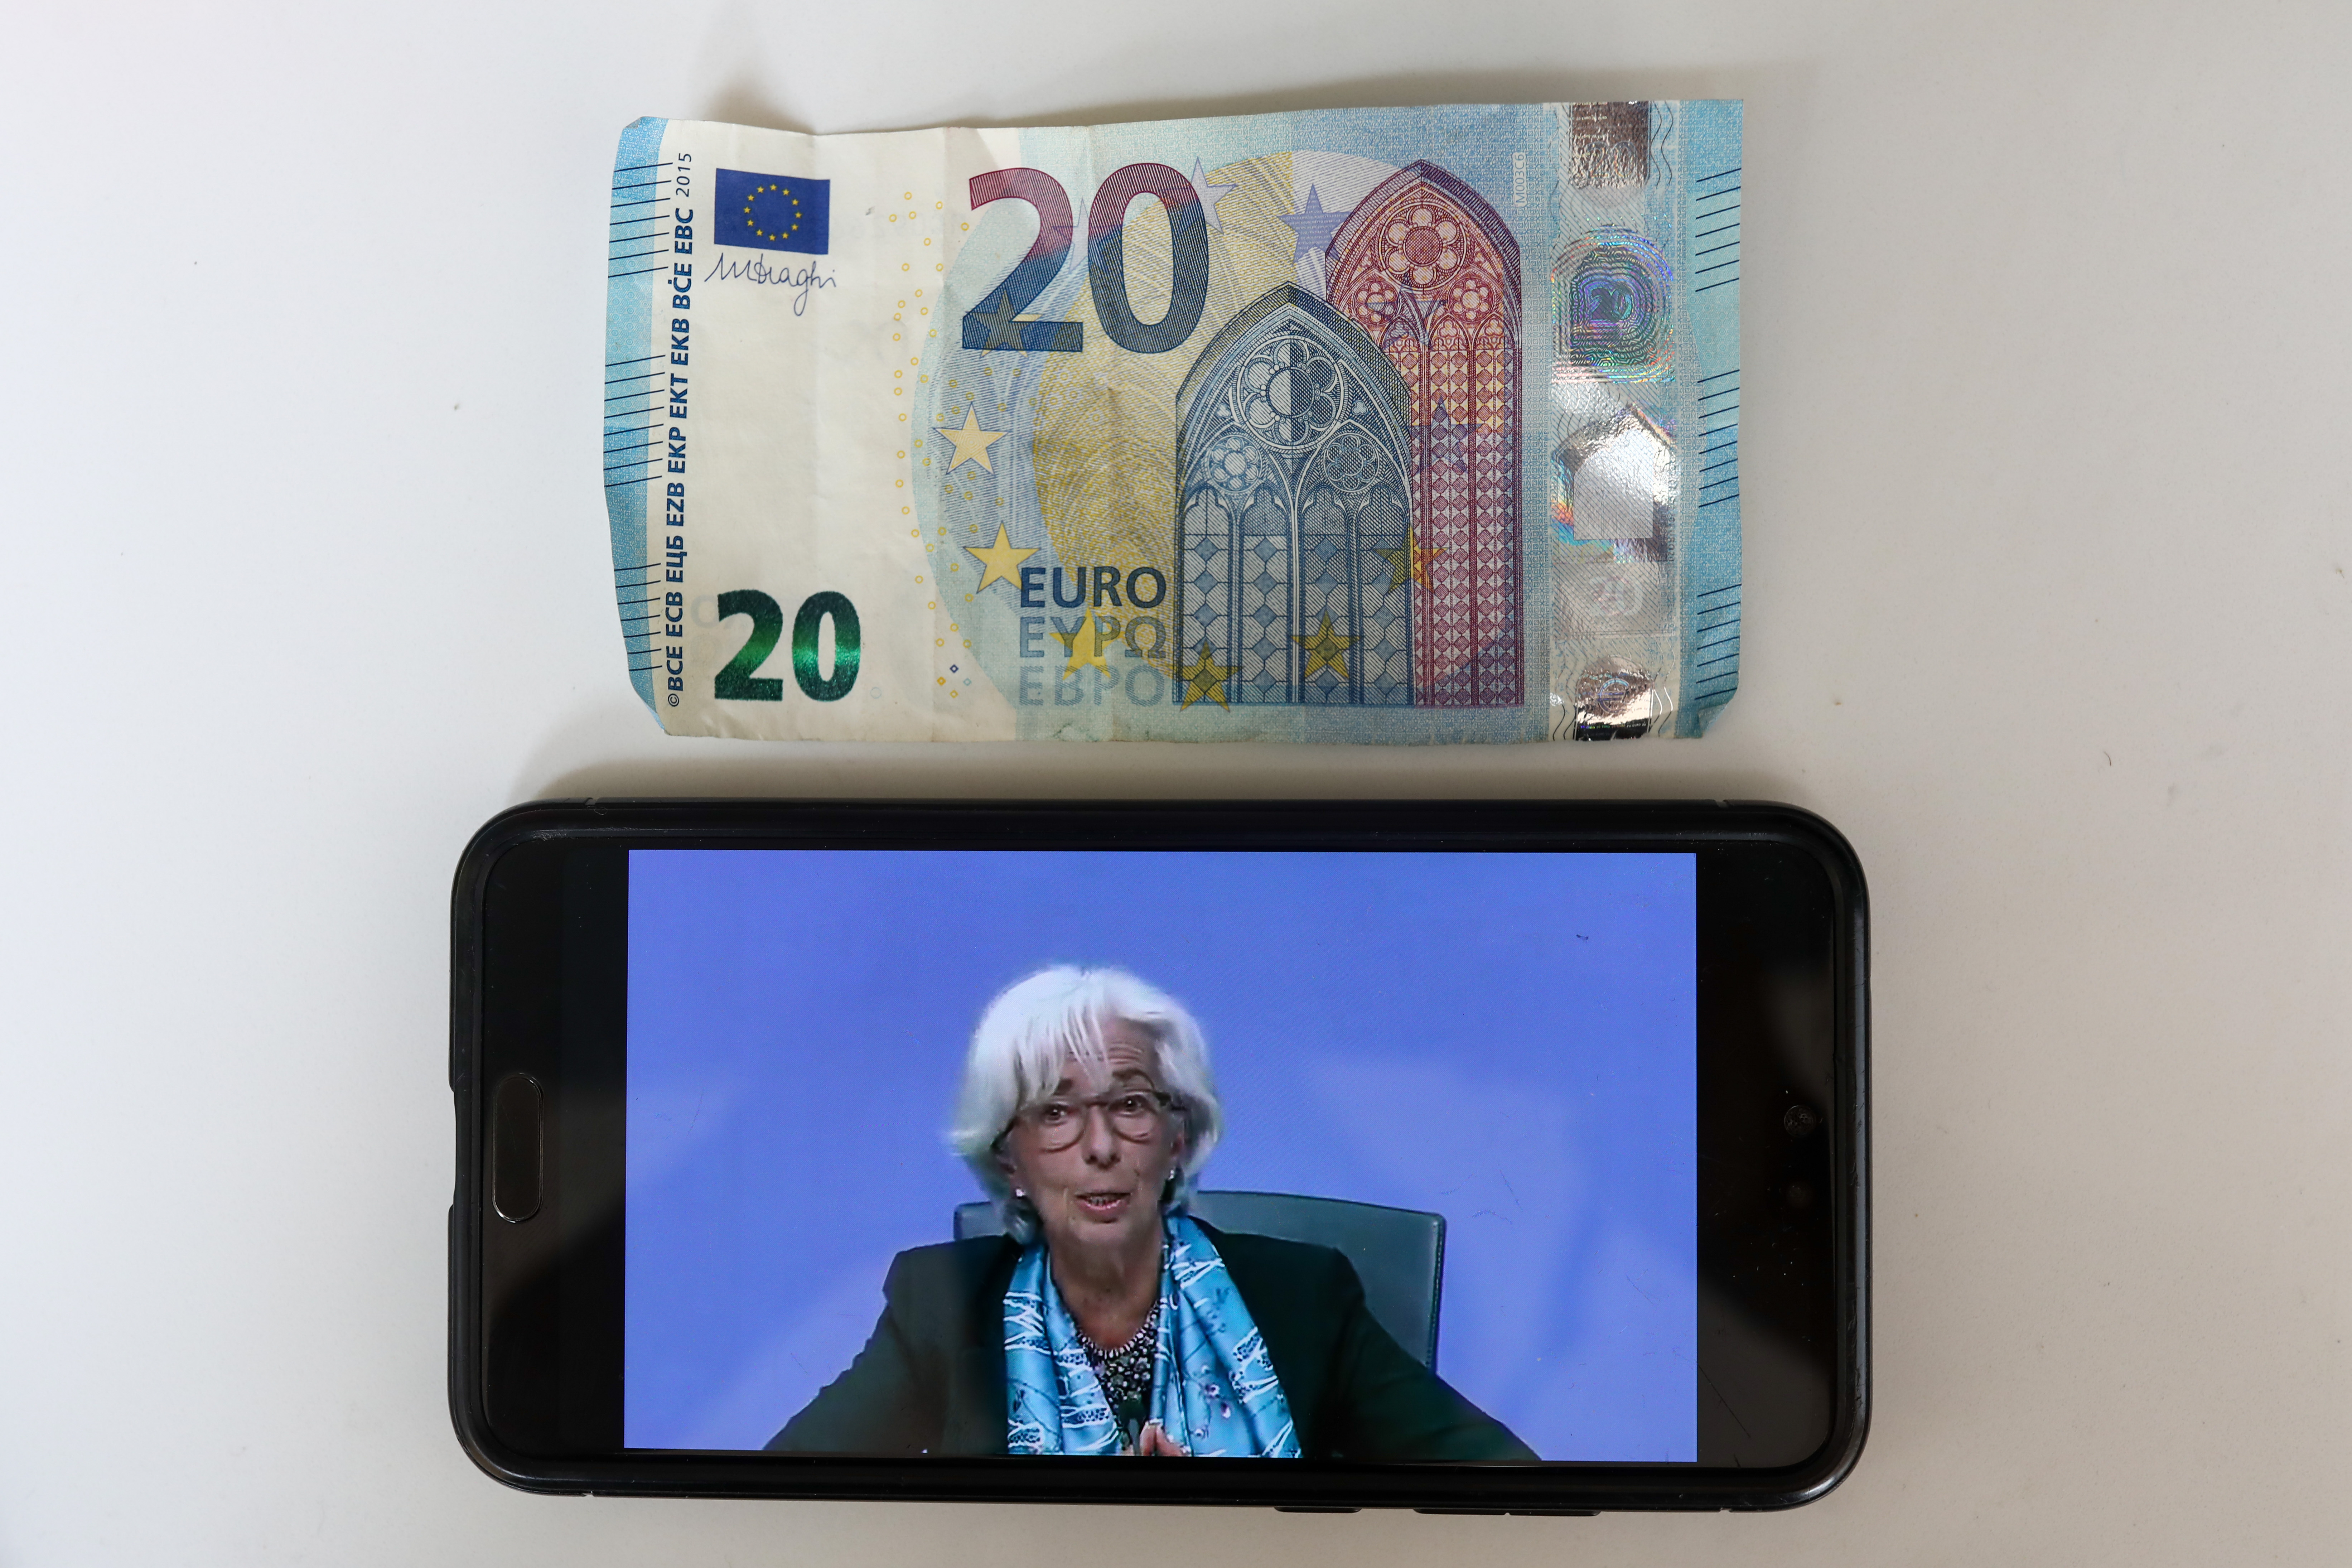 'Action had to be taken:' ECB stuns the markets with a new €600 billion spending plan thumbnail